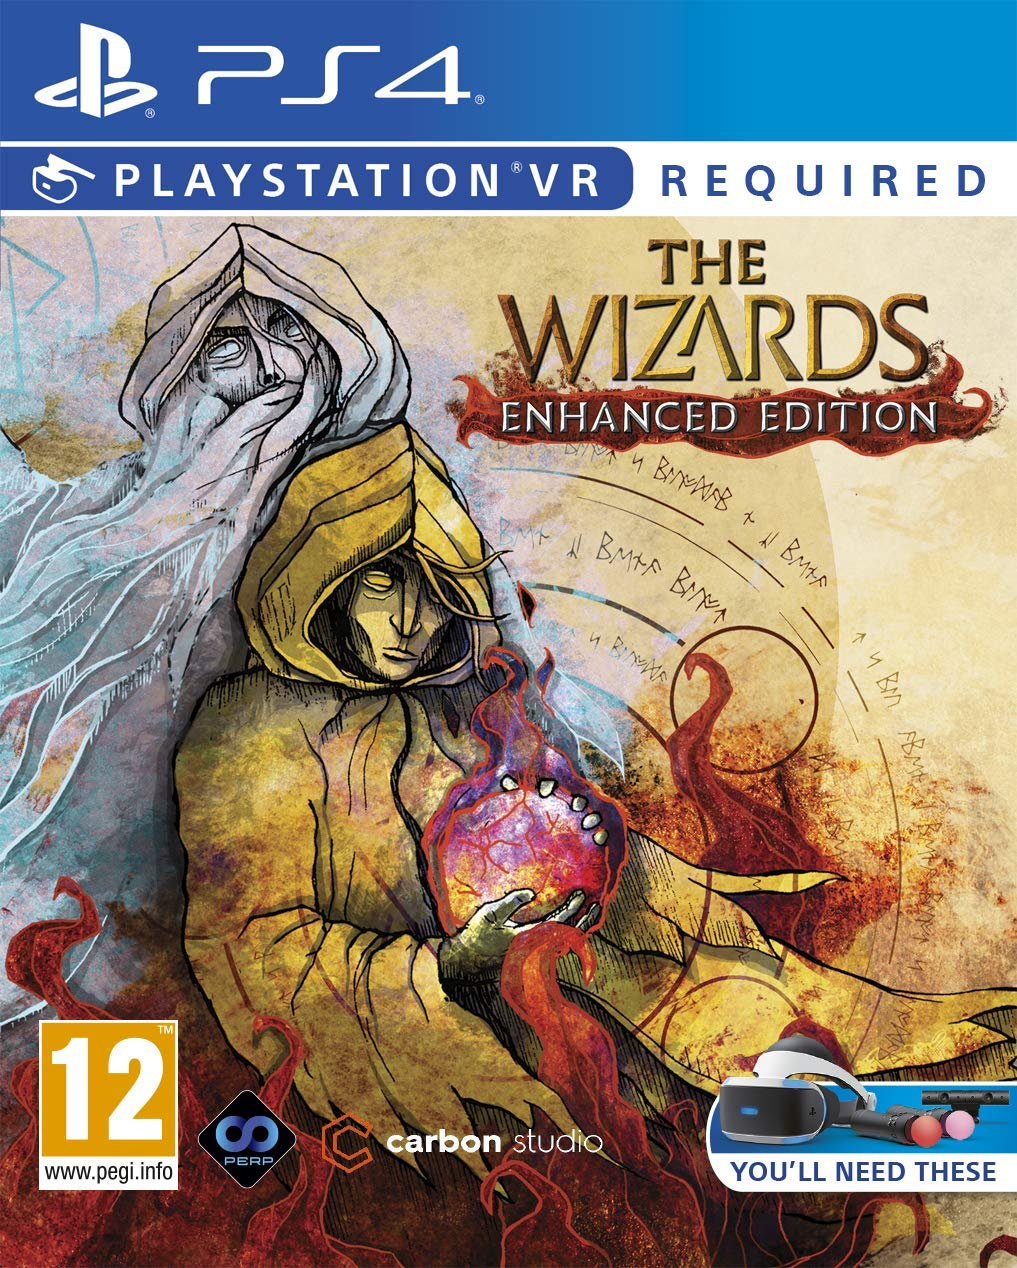 The Wizards - PlayStation VR